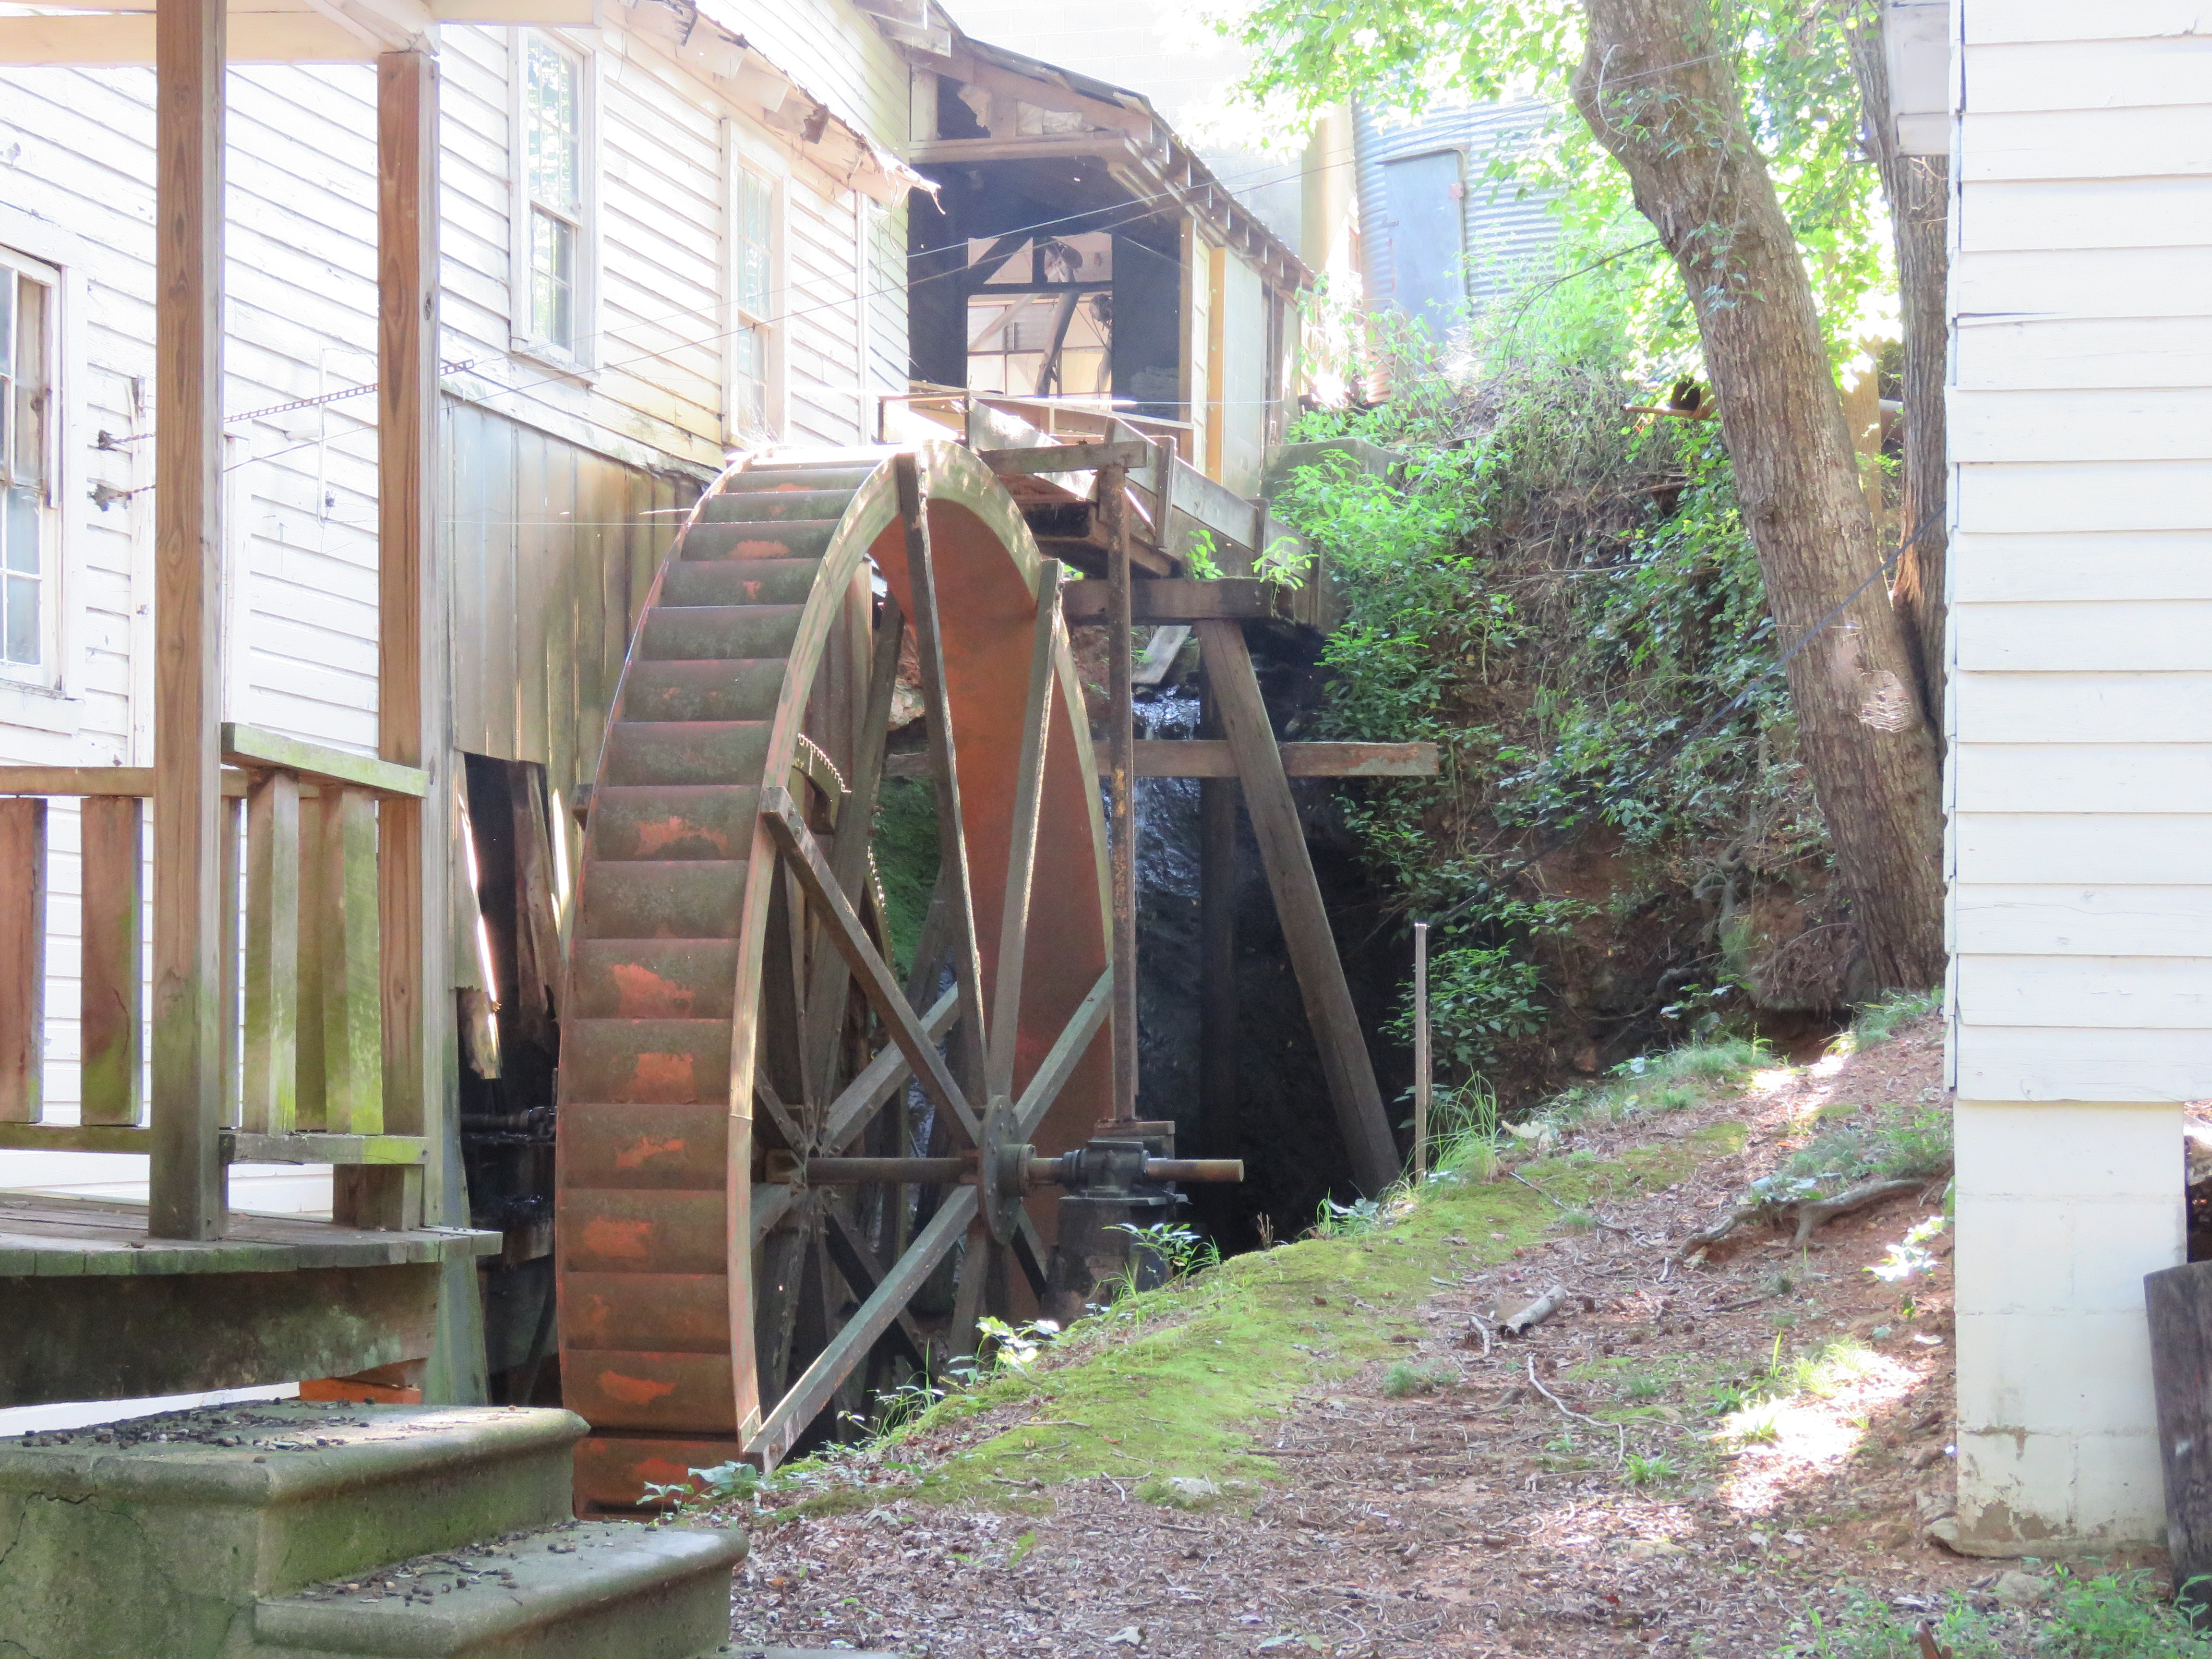 Suber Mill in South Carolina